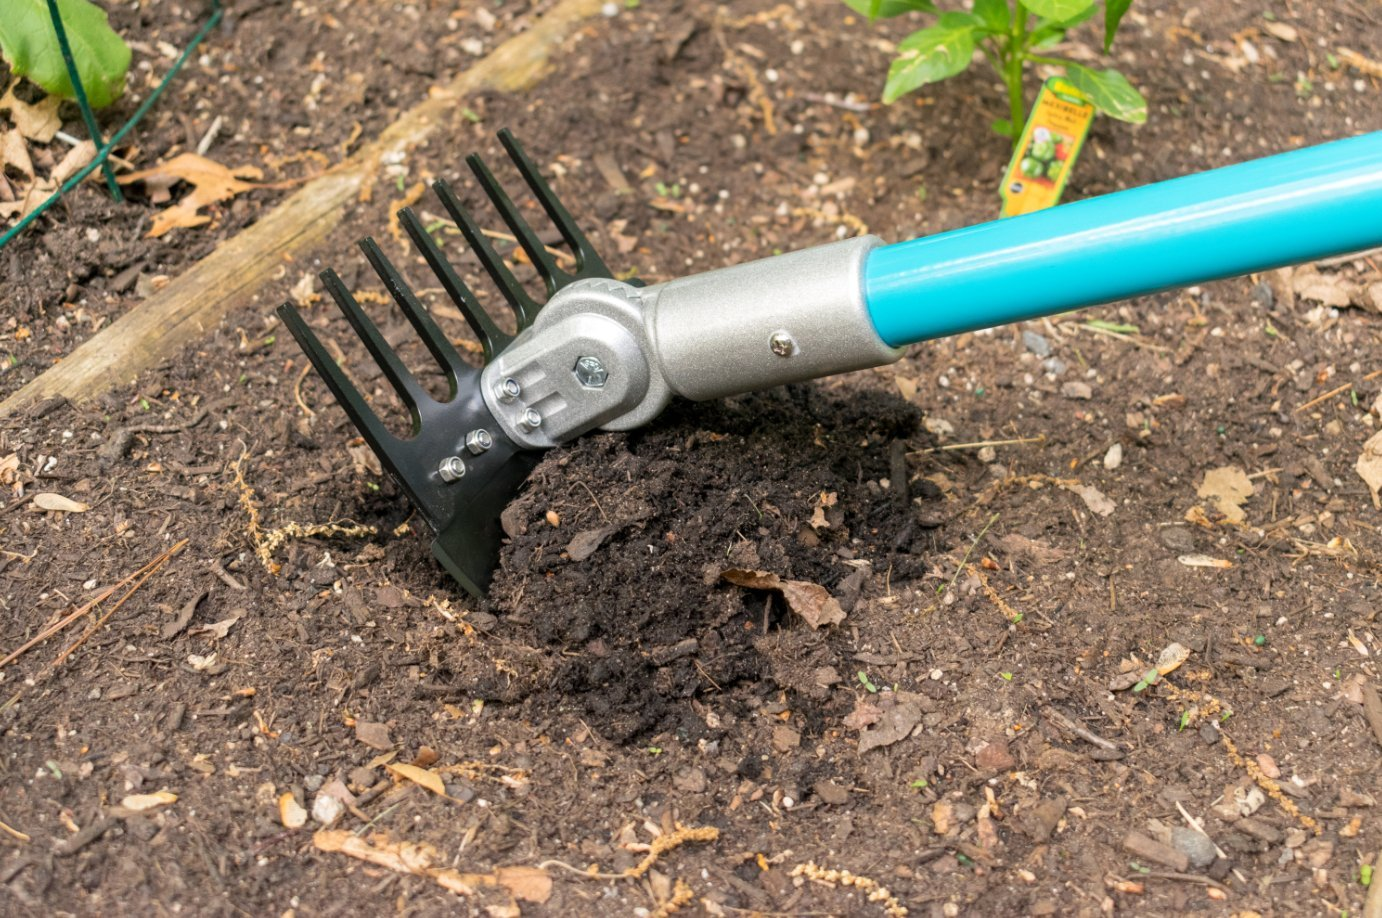 Yard-X Multi-Use Garden Tool (5 Tools in One) Rotating 180-degree head by Yard-X (Image #2)